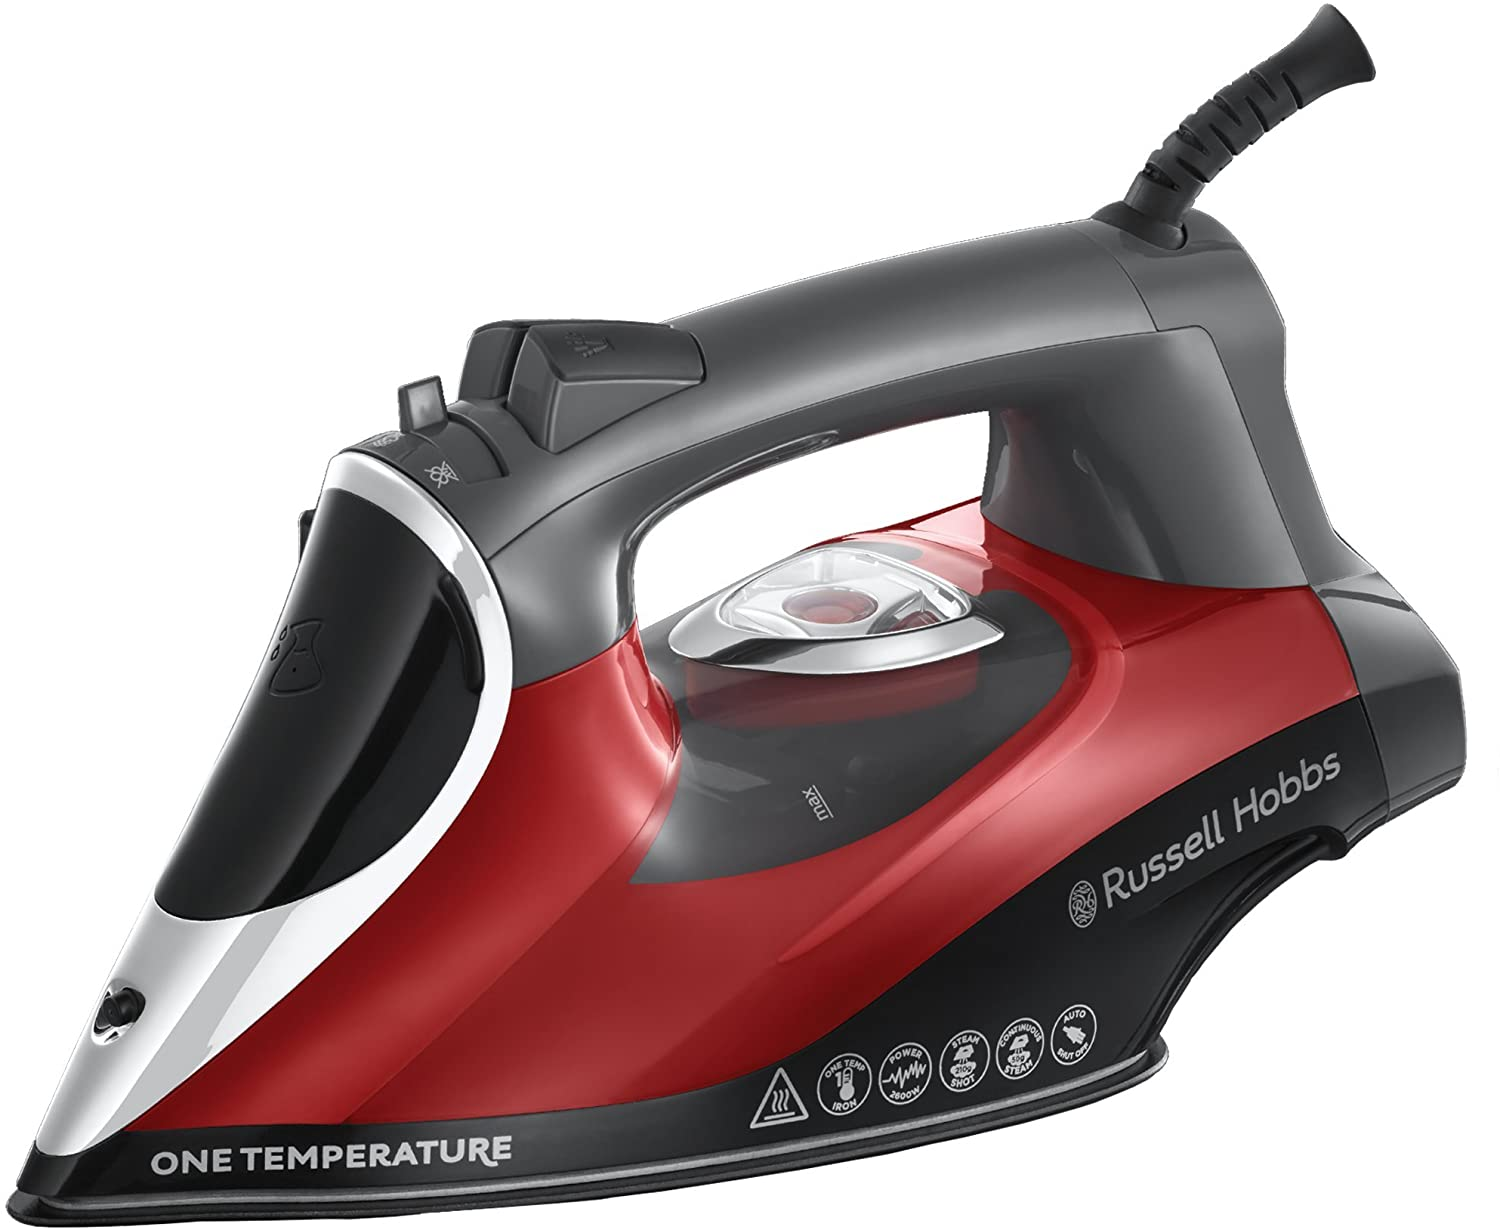 Russell Hobbs 25090 One Temperature Steam Iron